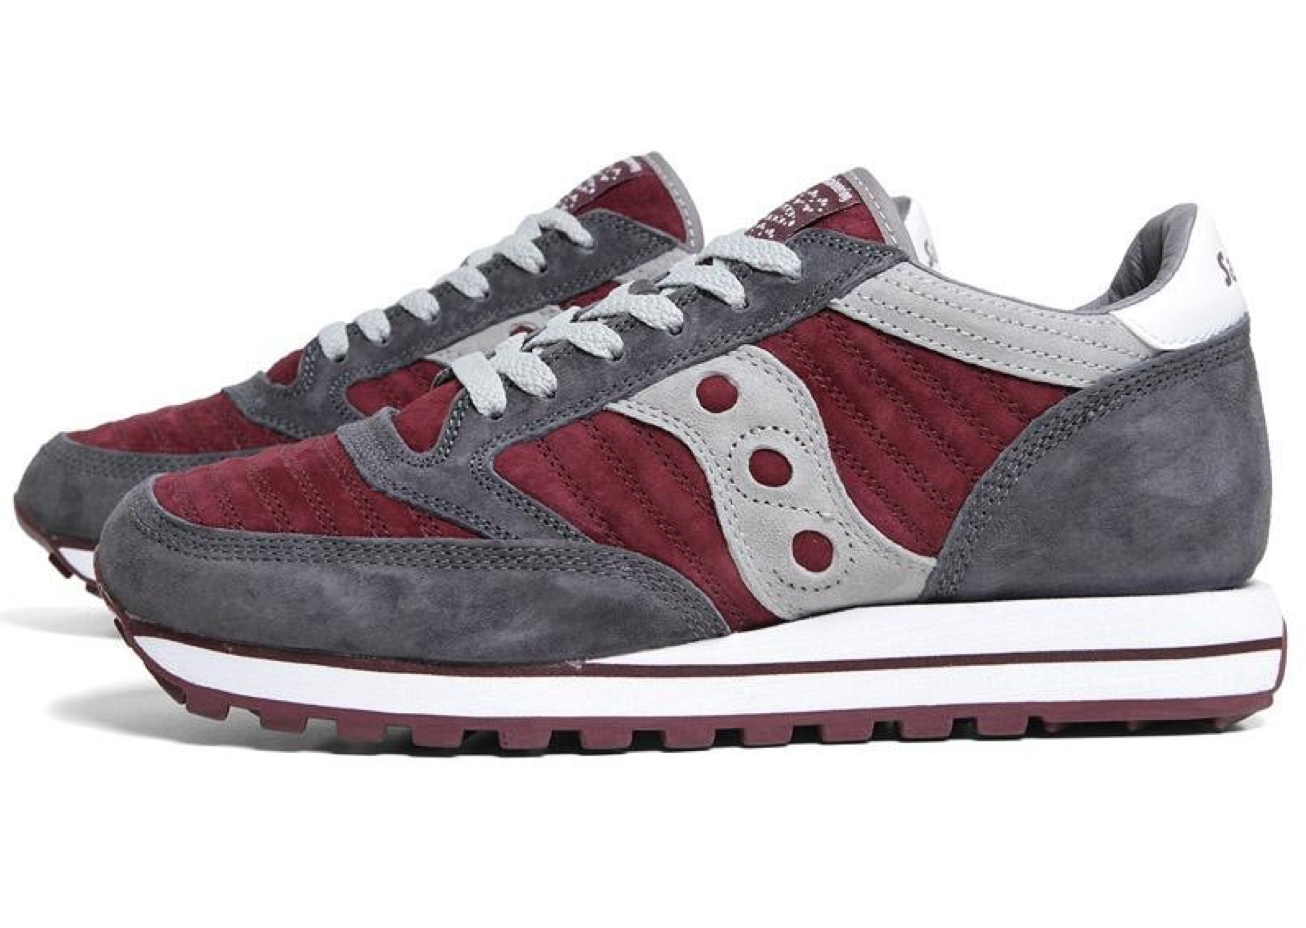 White Mountaineering x Saucony Jazz Original 'Charcoal/Burgundy'